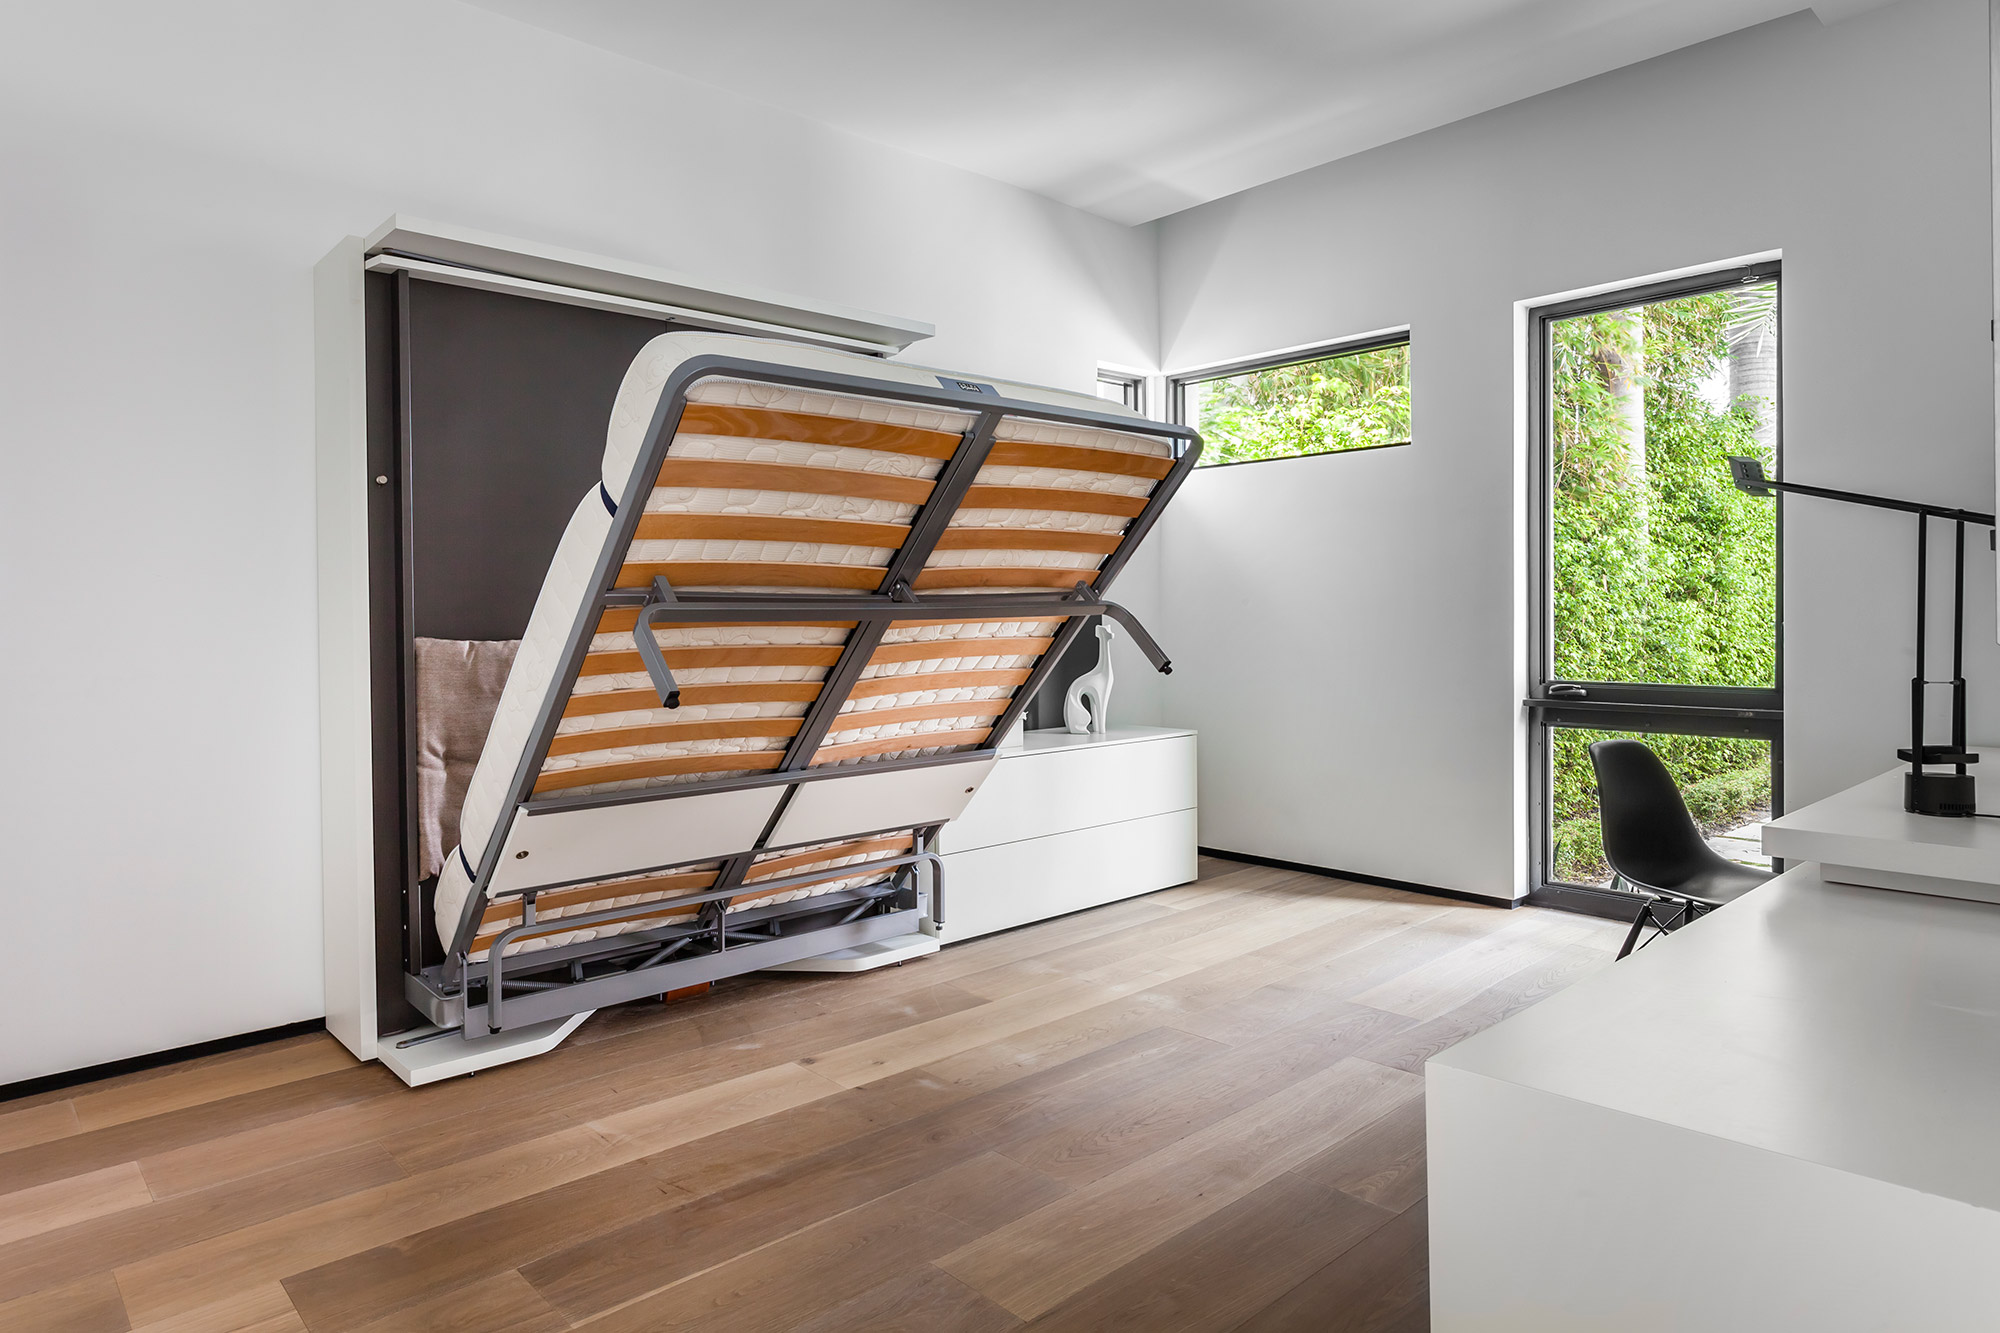 Lgm Convertible Wall Bed By Clei Anima Domus